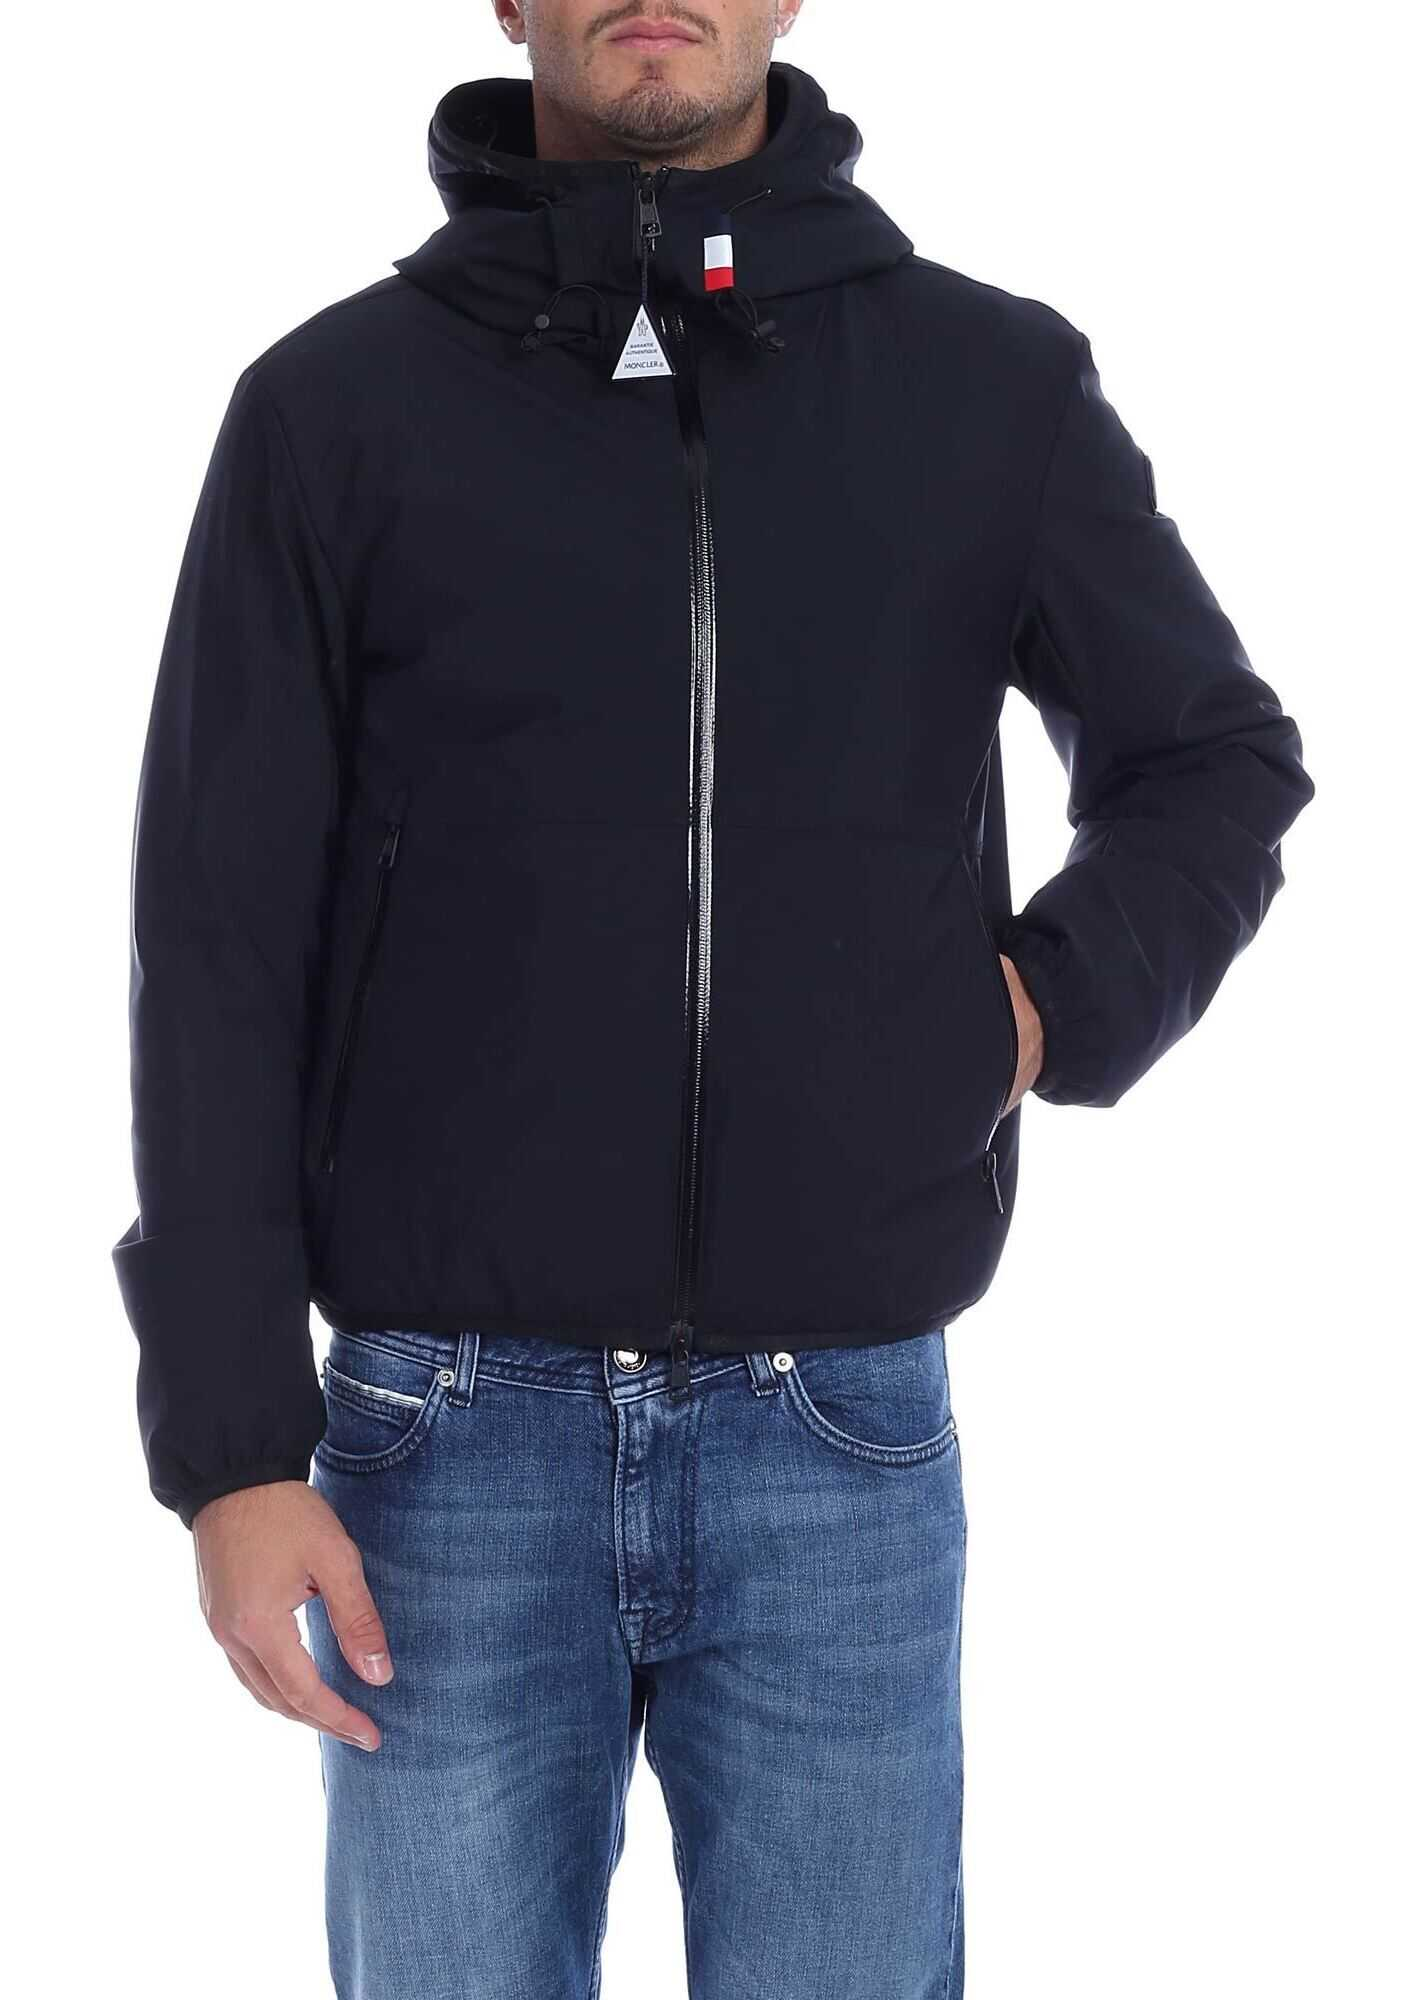 Duport Hooded Down Jacket In Black thumbnail